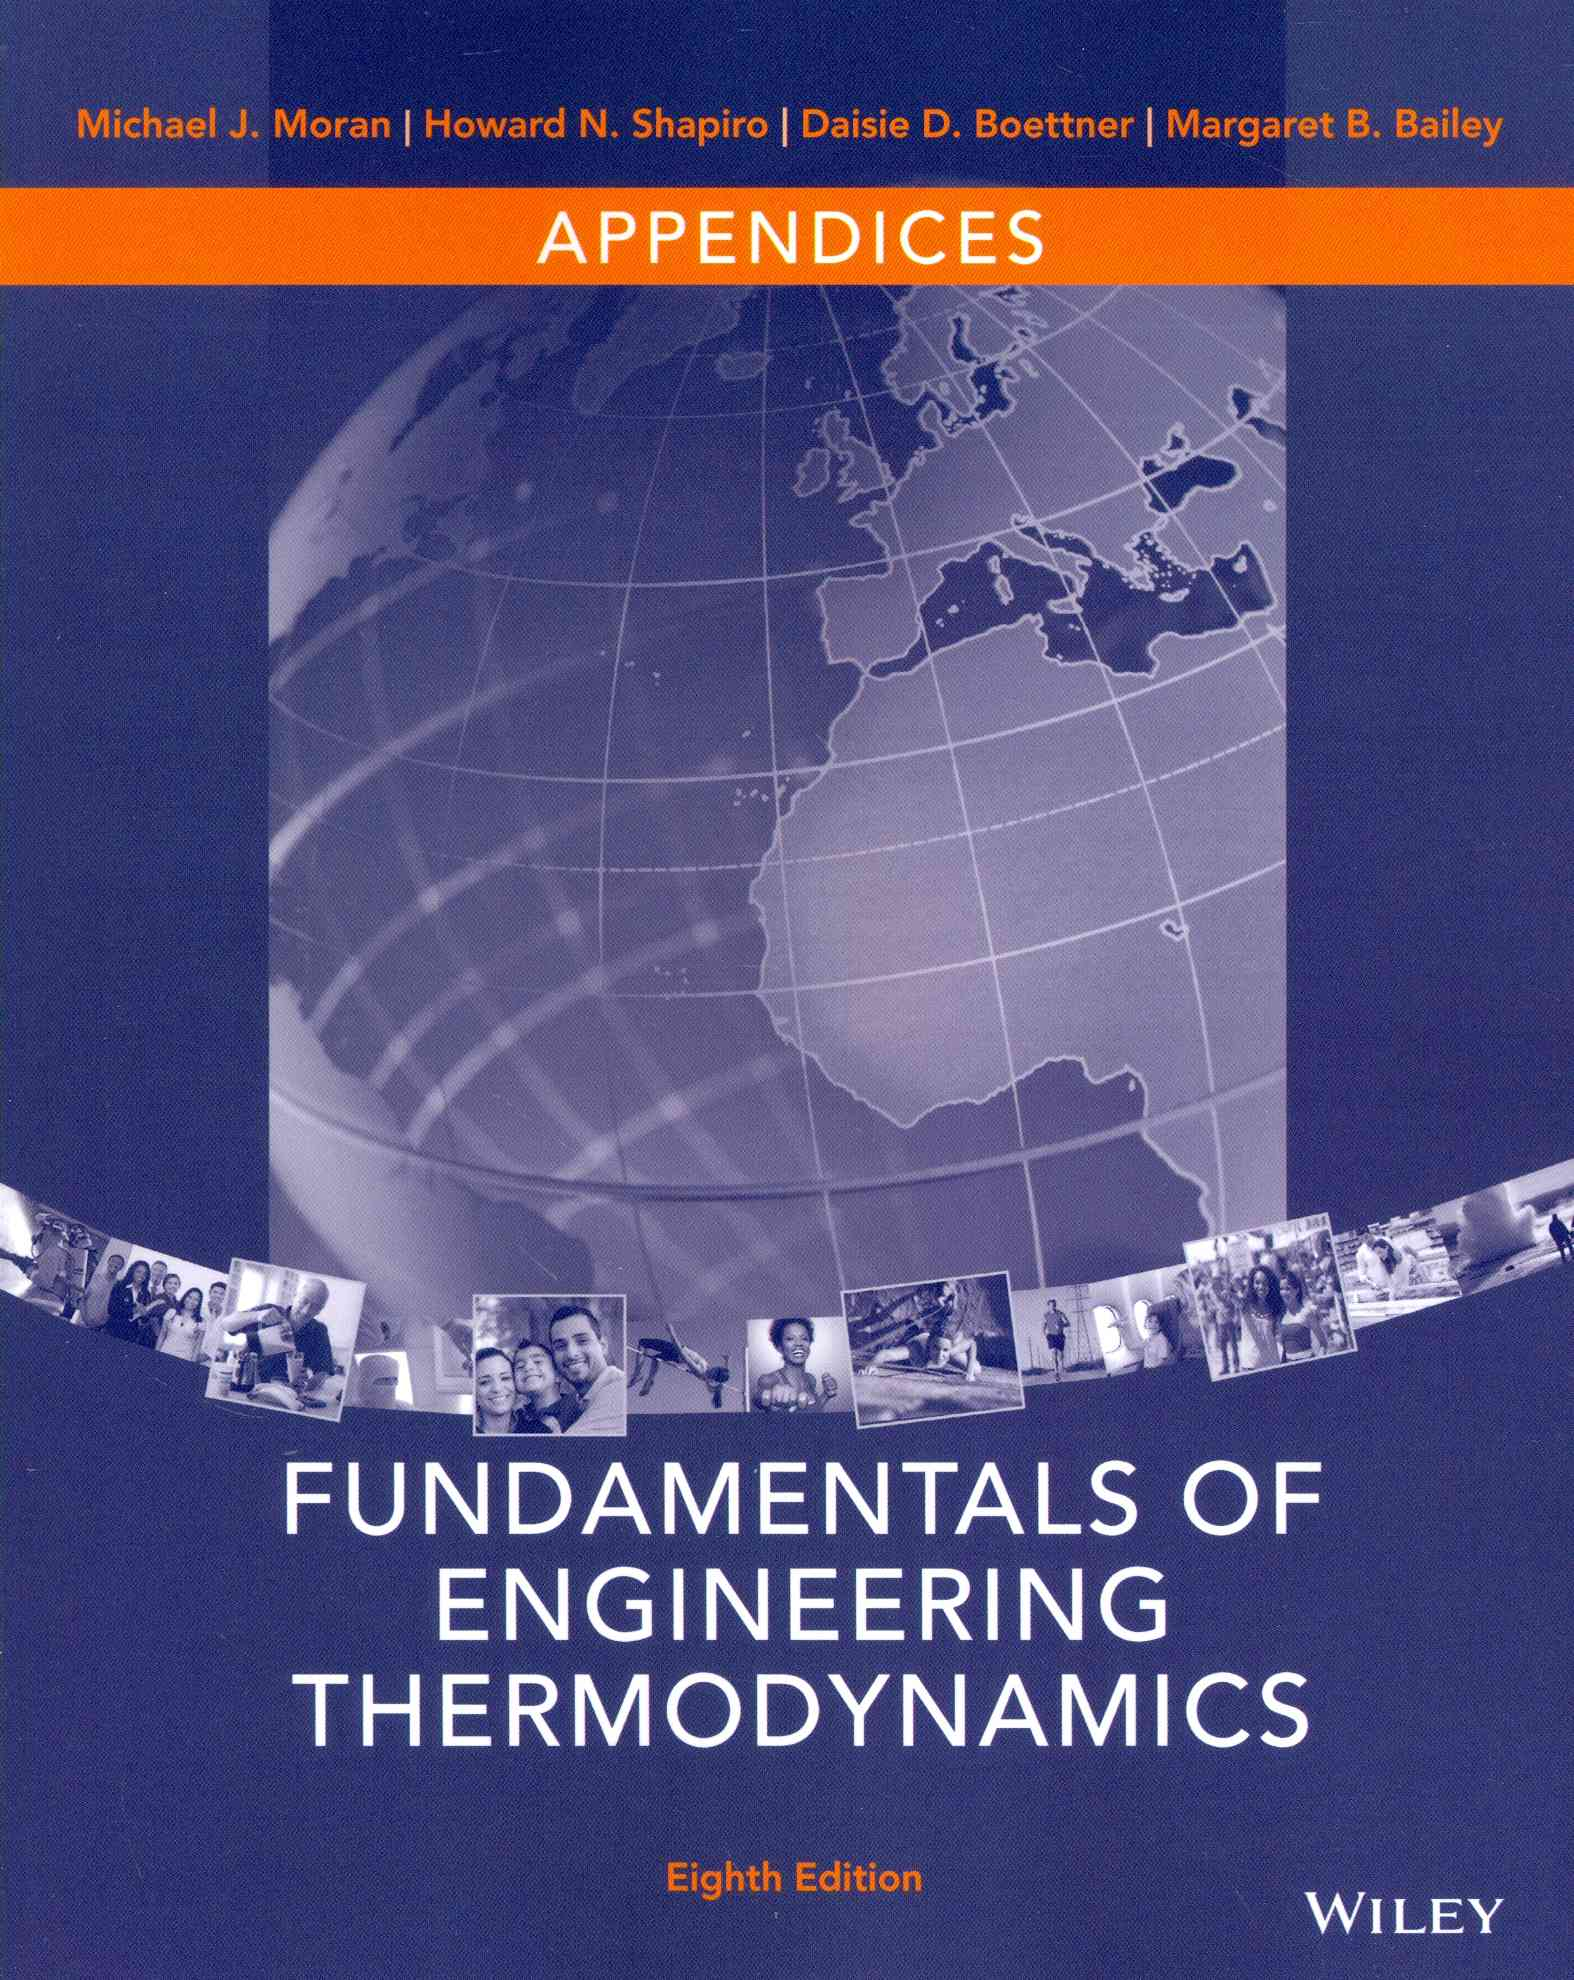 Fundamentals of Engineering Thermodynamics Appendices By Moran, Michael J./ Shapiro, Howard N.